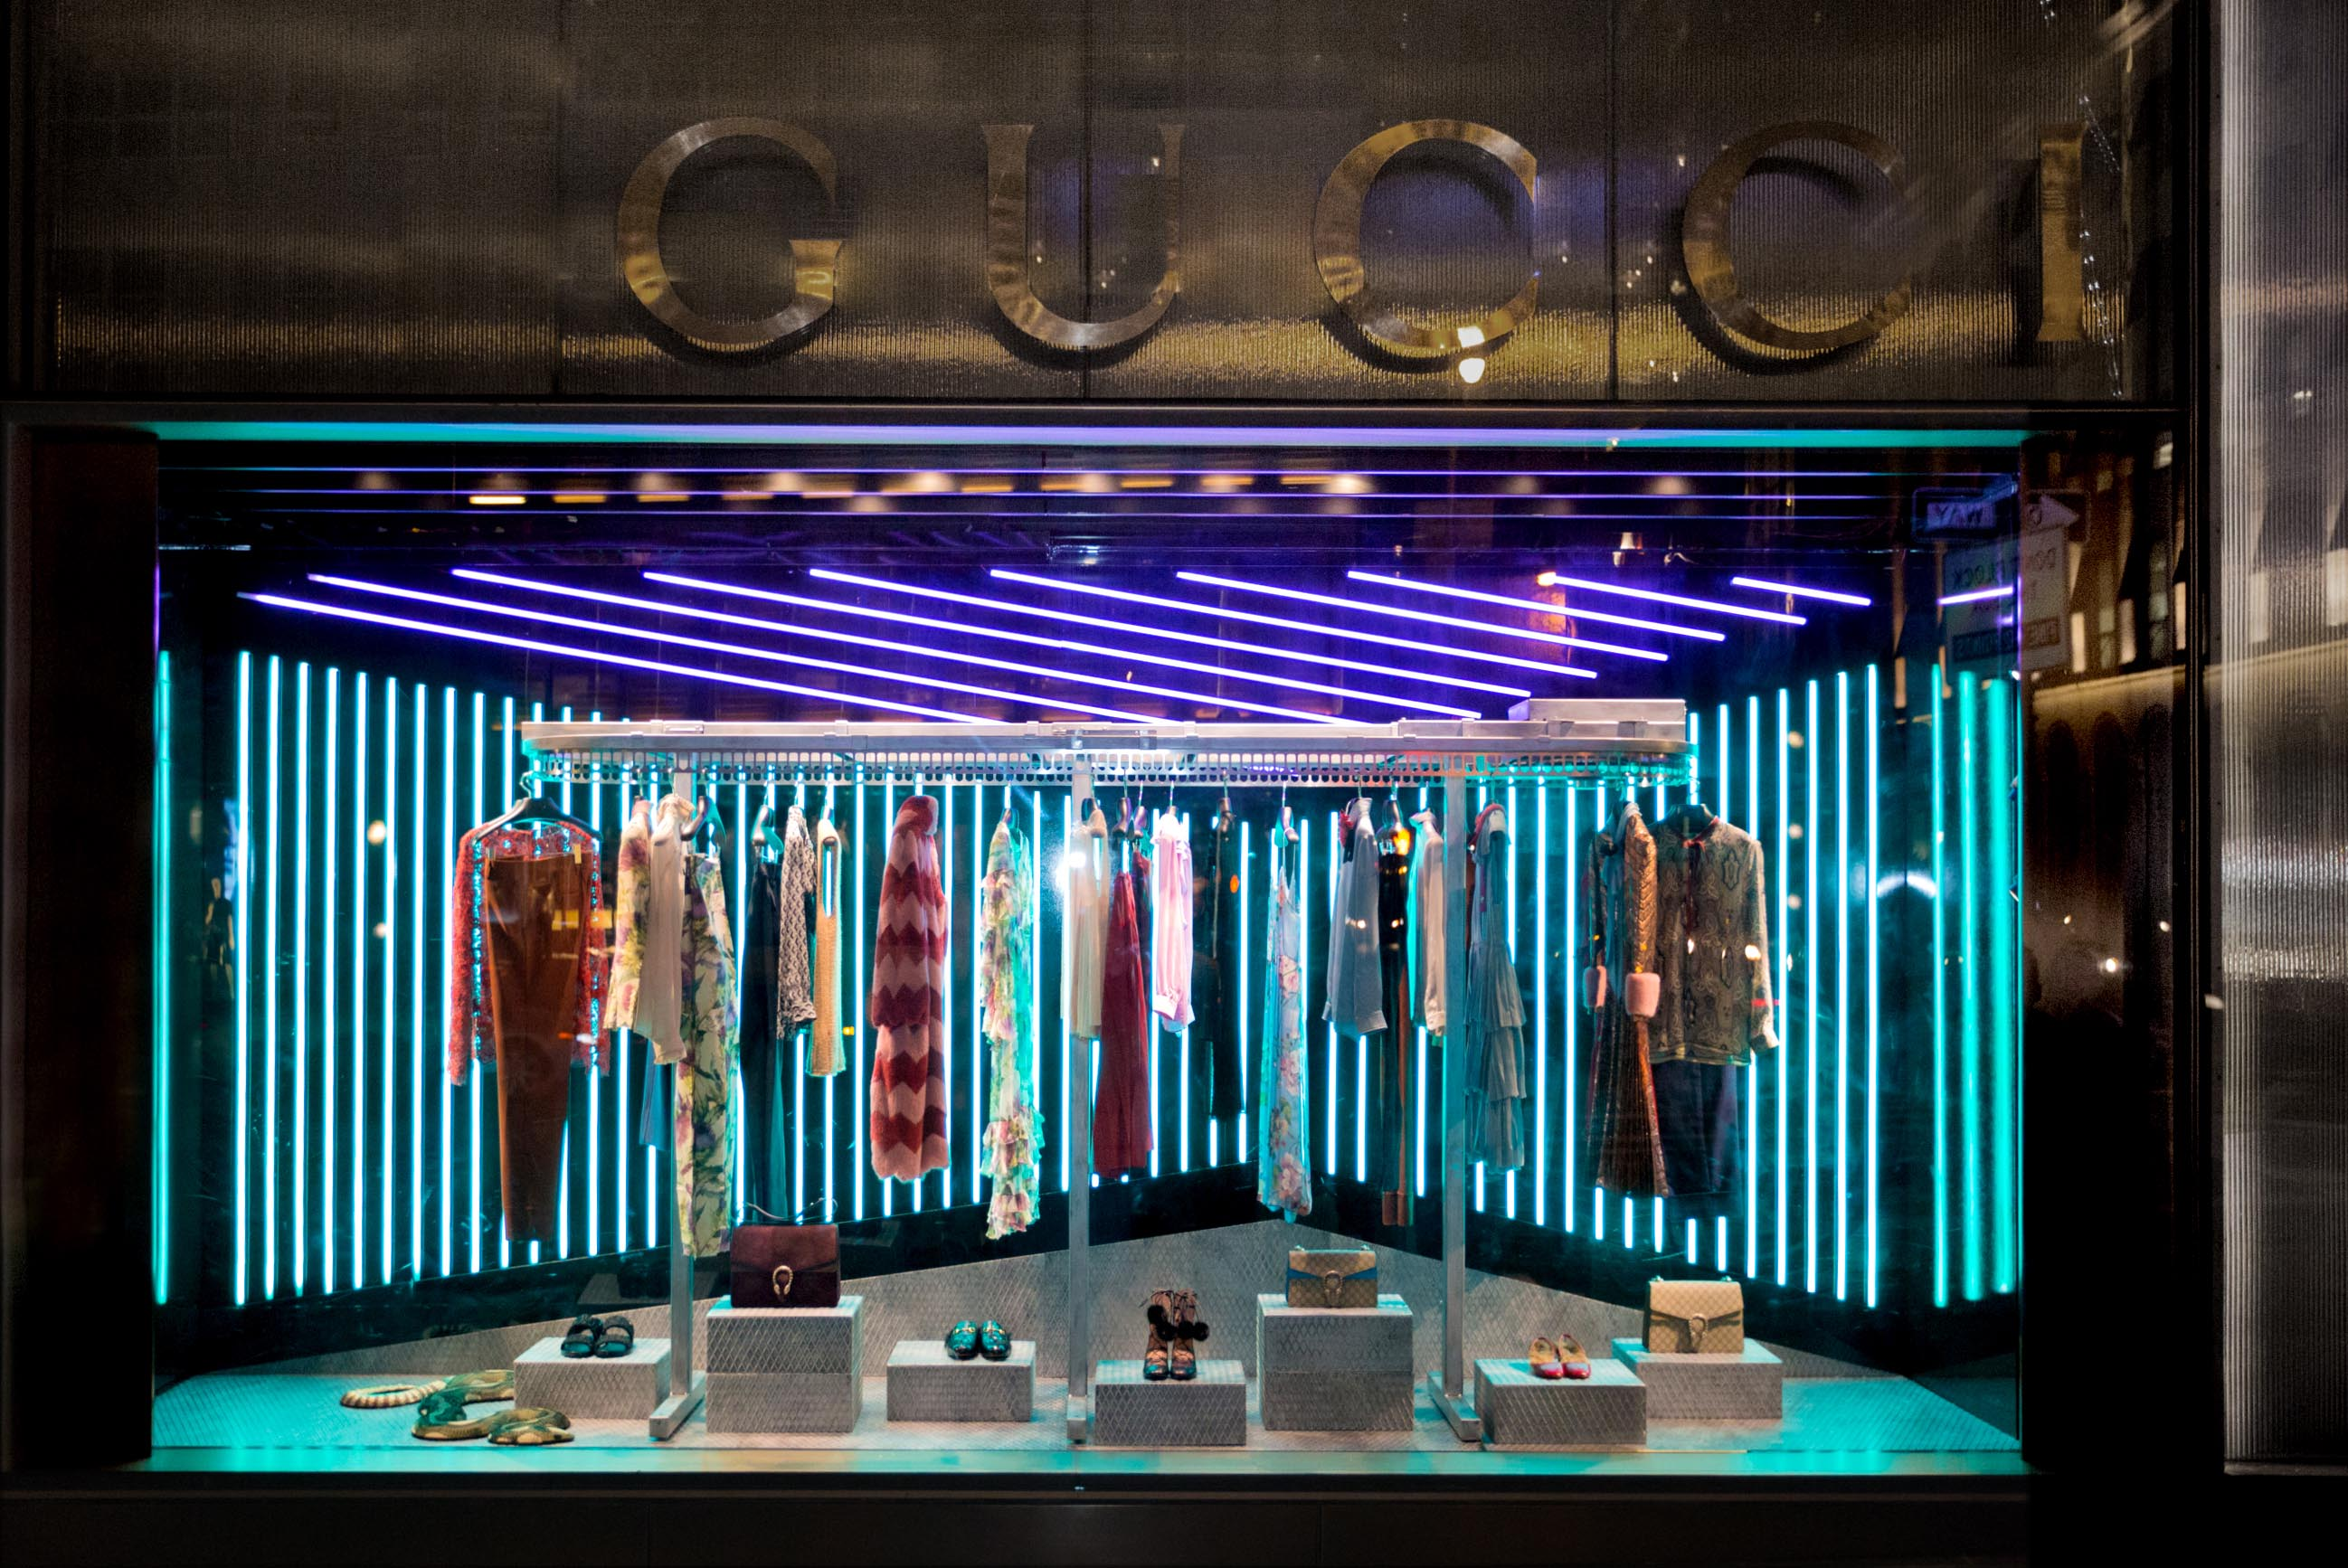 Iluminacion Escaparates Gucci Unveils Window Design For Alessandro Michele 39s First